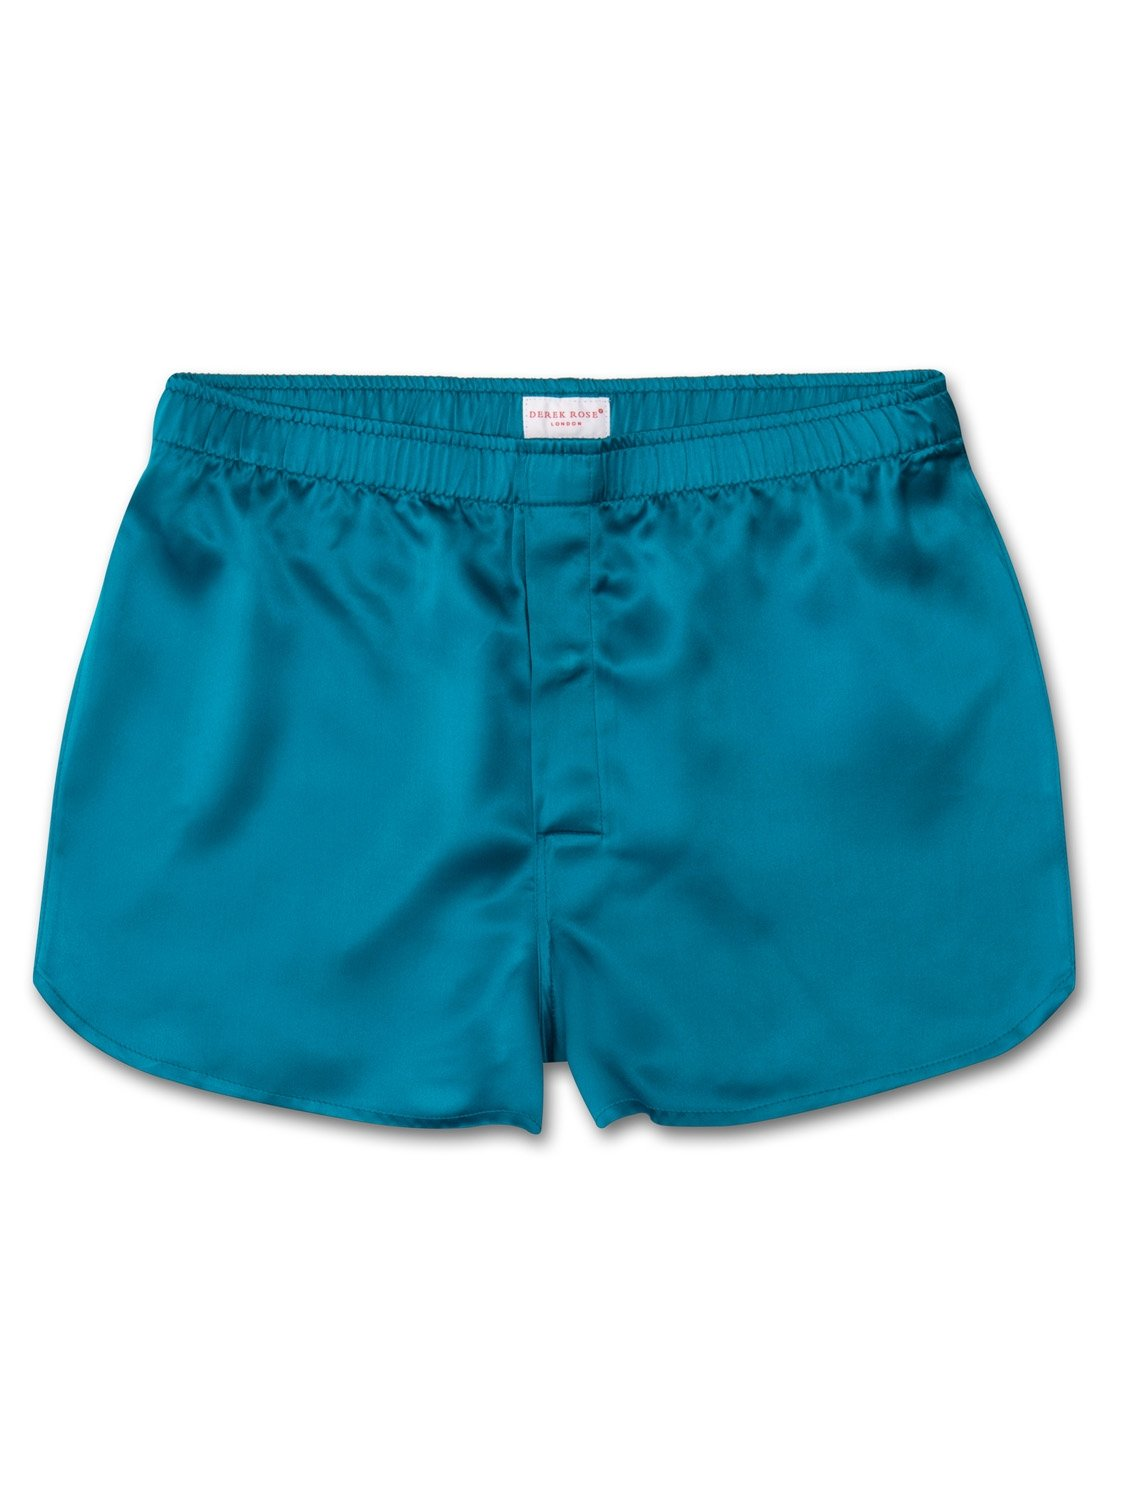 Men's Modern Fit Boxer Shorts Bailey Pure Silk Satin Teal